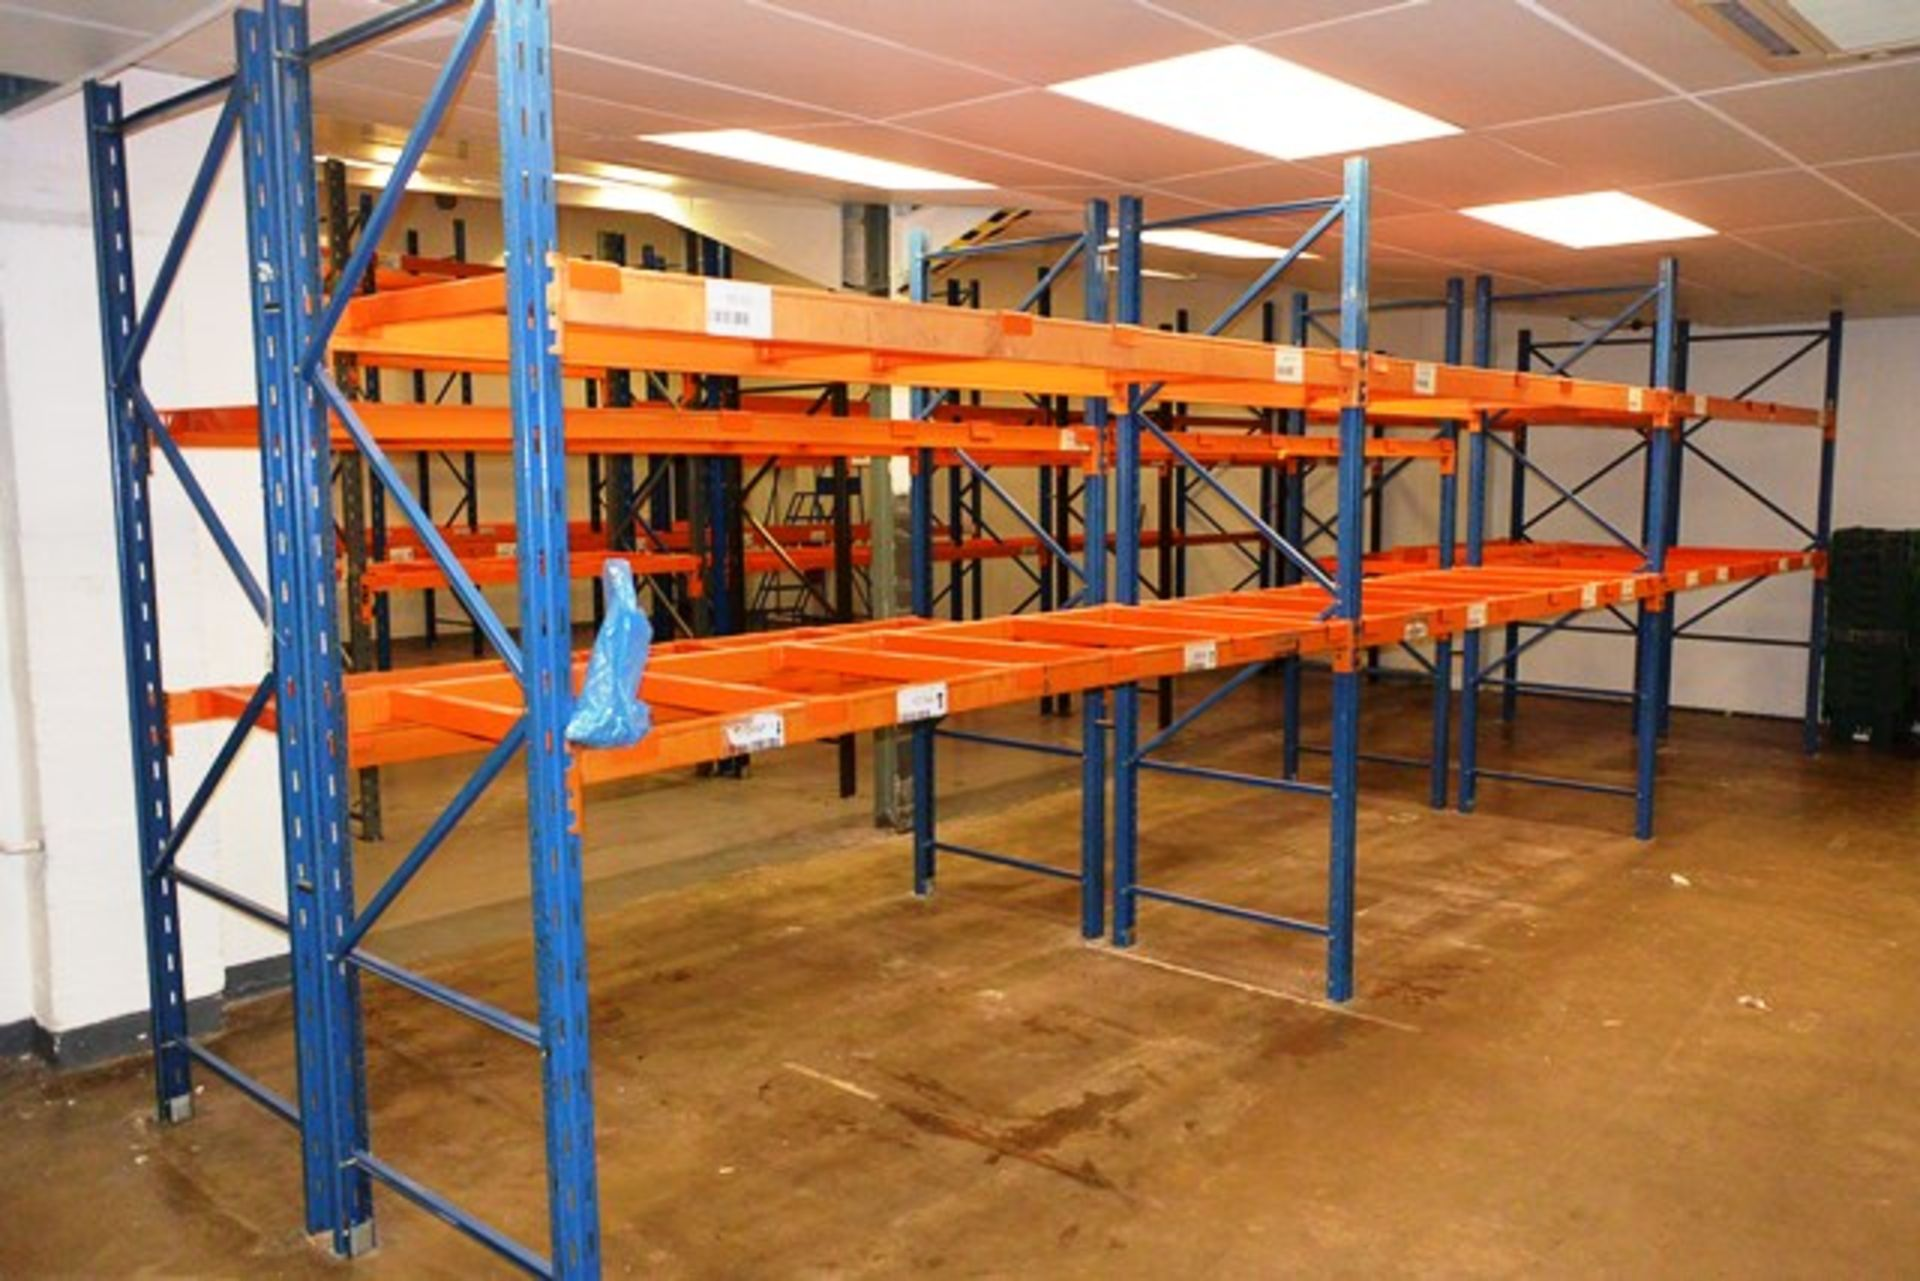 Six bays of adjustable boltless pallet racking, approx 2600 height, 2750mm width per bay (Please